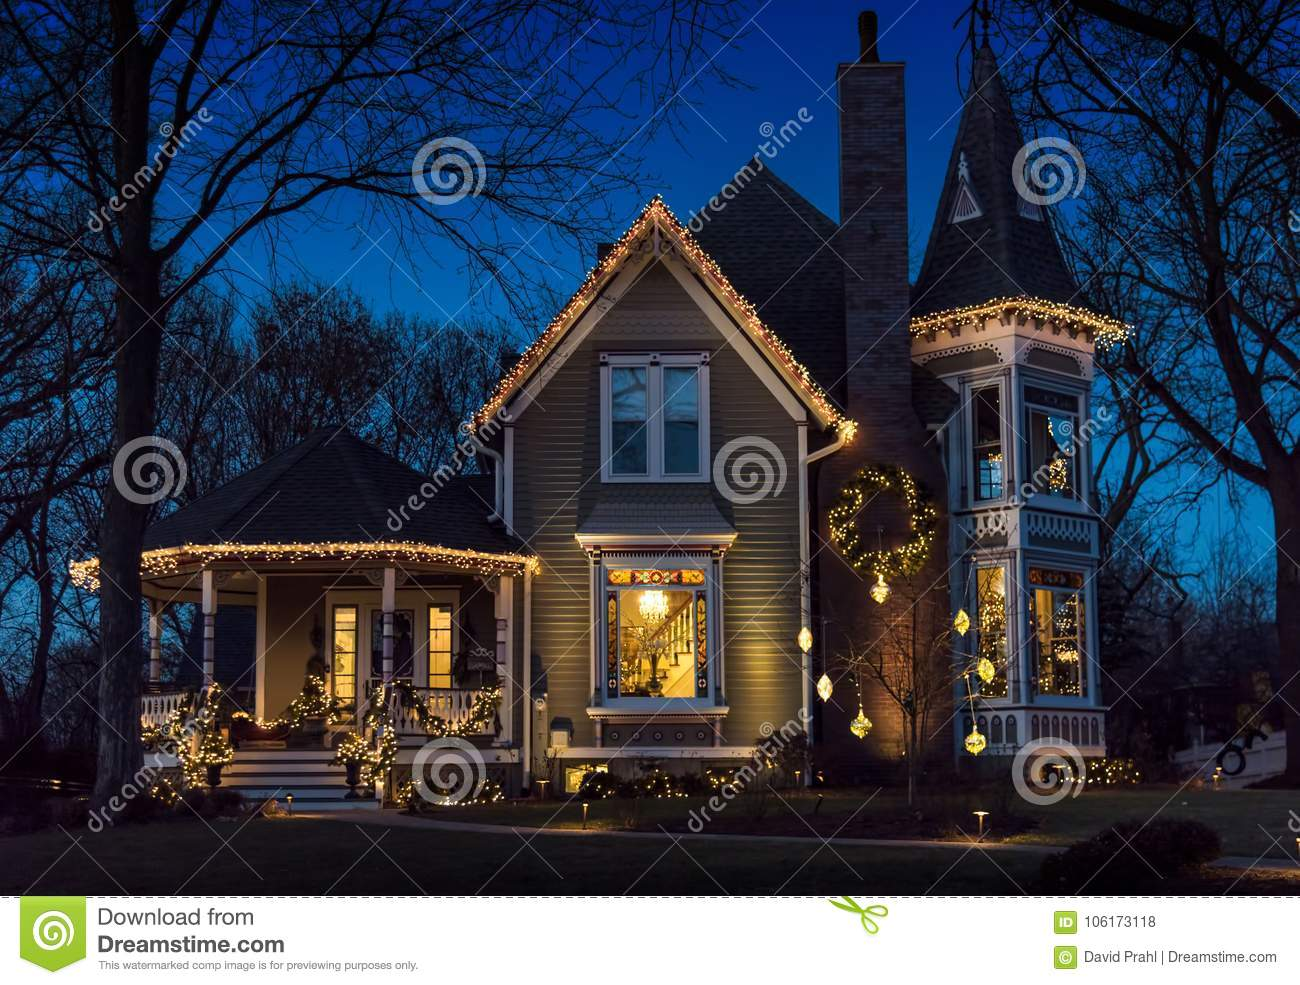 Exterior of victorian home decorated for christmas stock photo image of garand white 106173118 for Christmas lights for house exterior